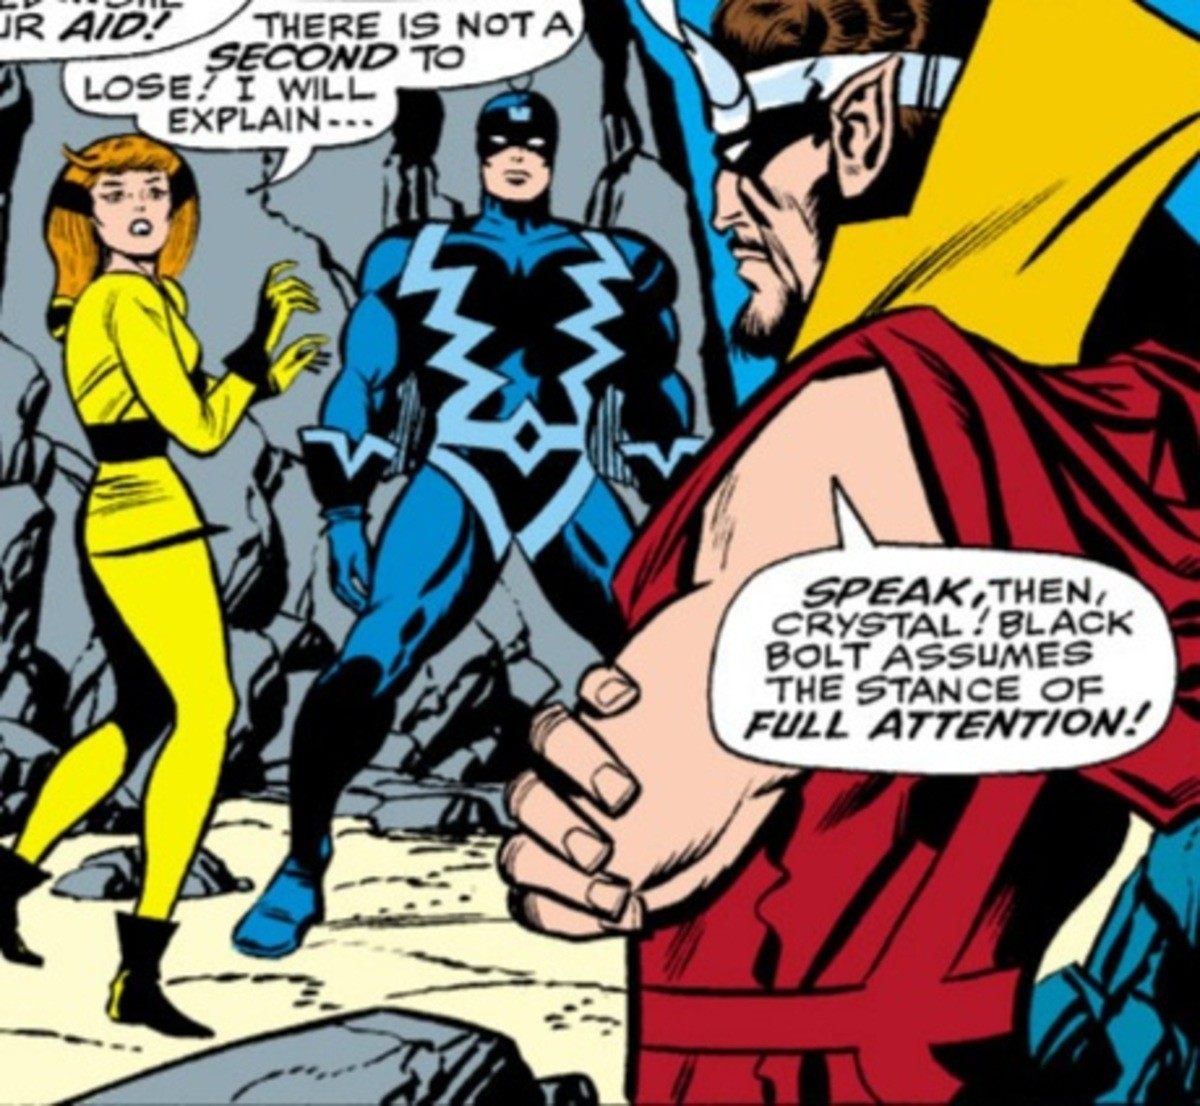 Body Language. Fantastic Four (1961) Issue #62 .. Isn't black bolt the dude with the destructive voice? How is he yelling?